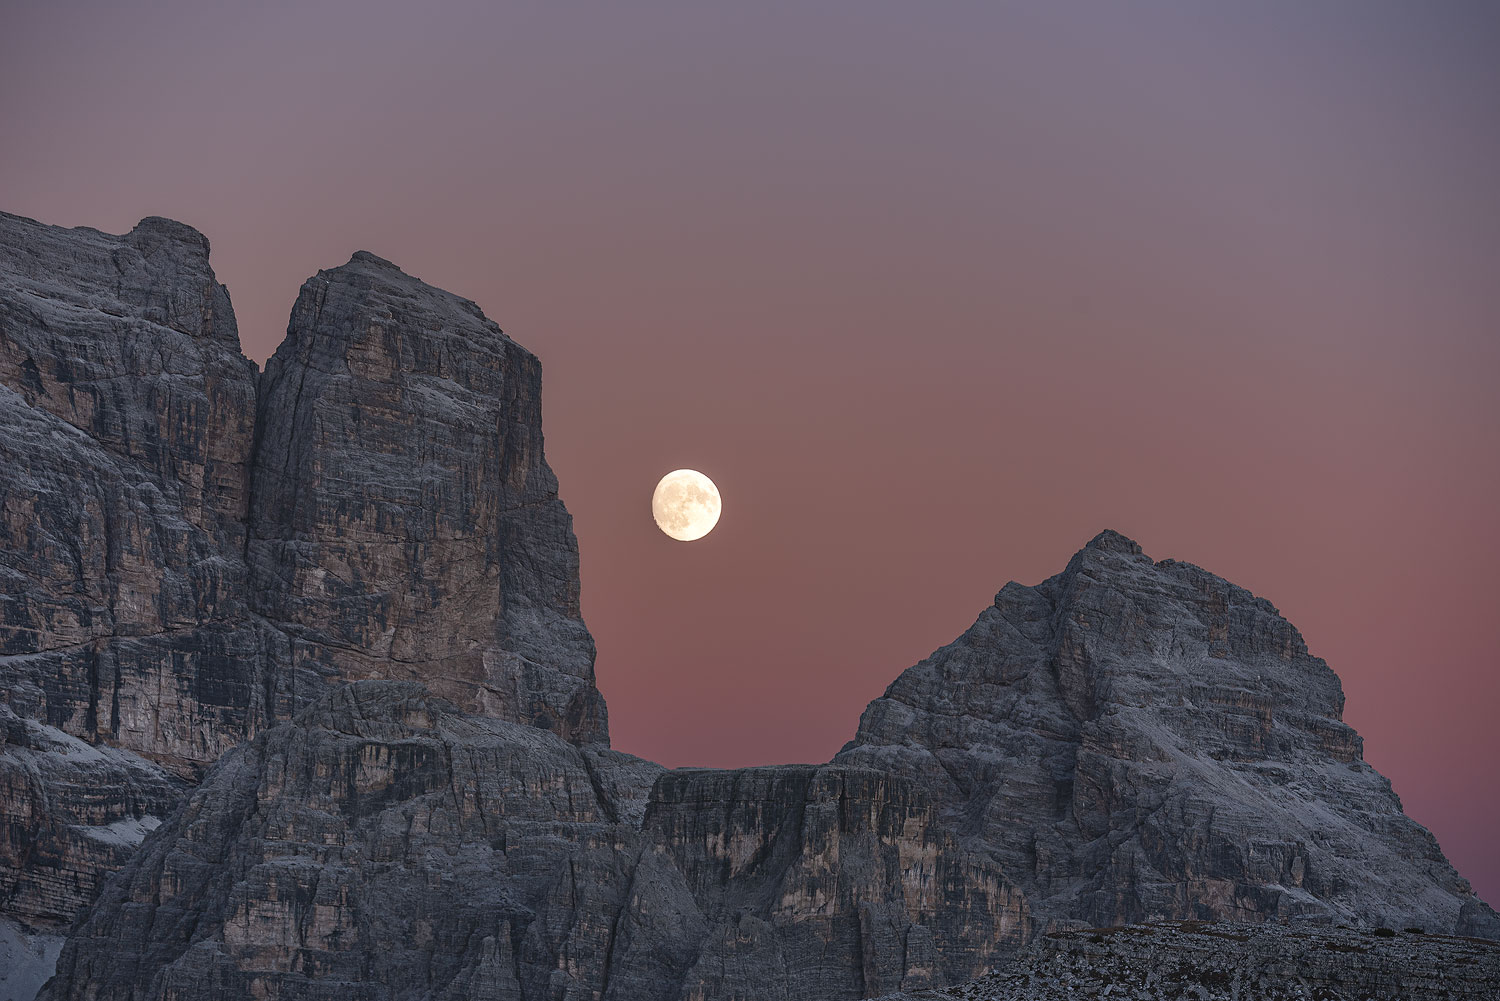 A close up to the Moon rising between two moutains in Dolomites